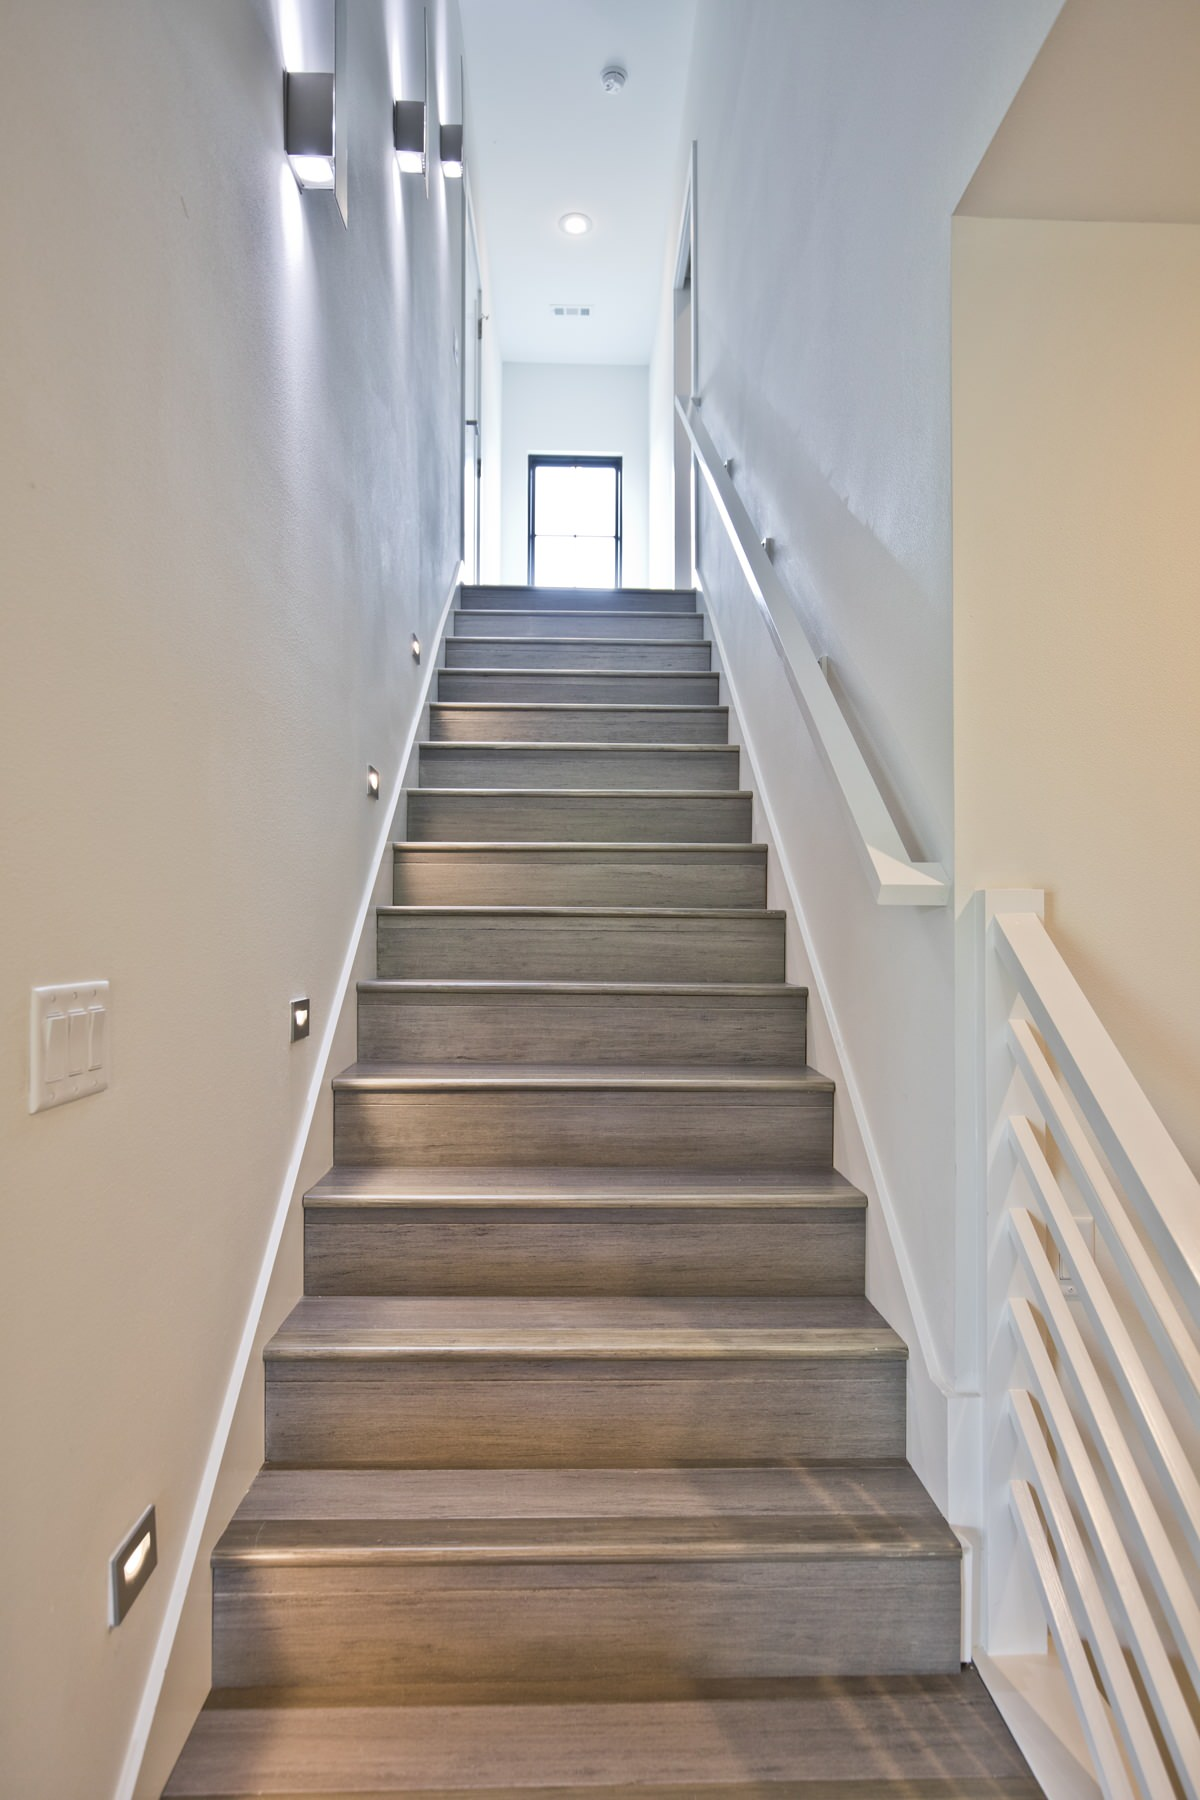 75 Beautiful Staircase Pictures Ideas February 2021 Houzz